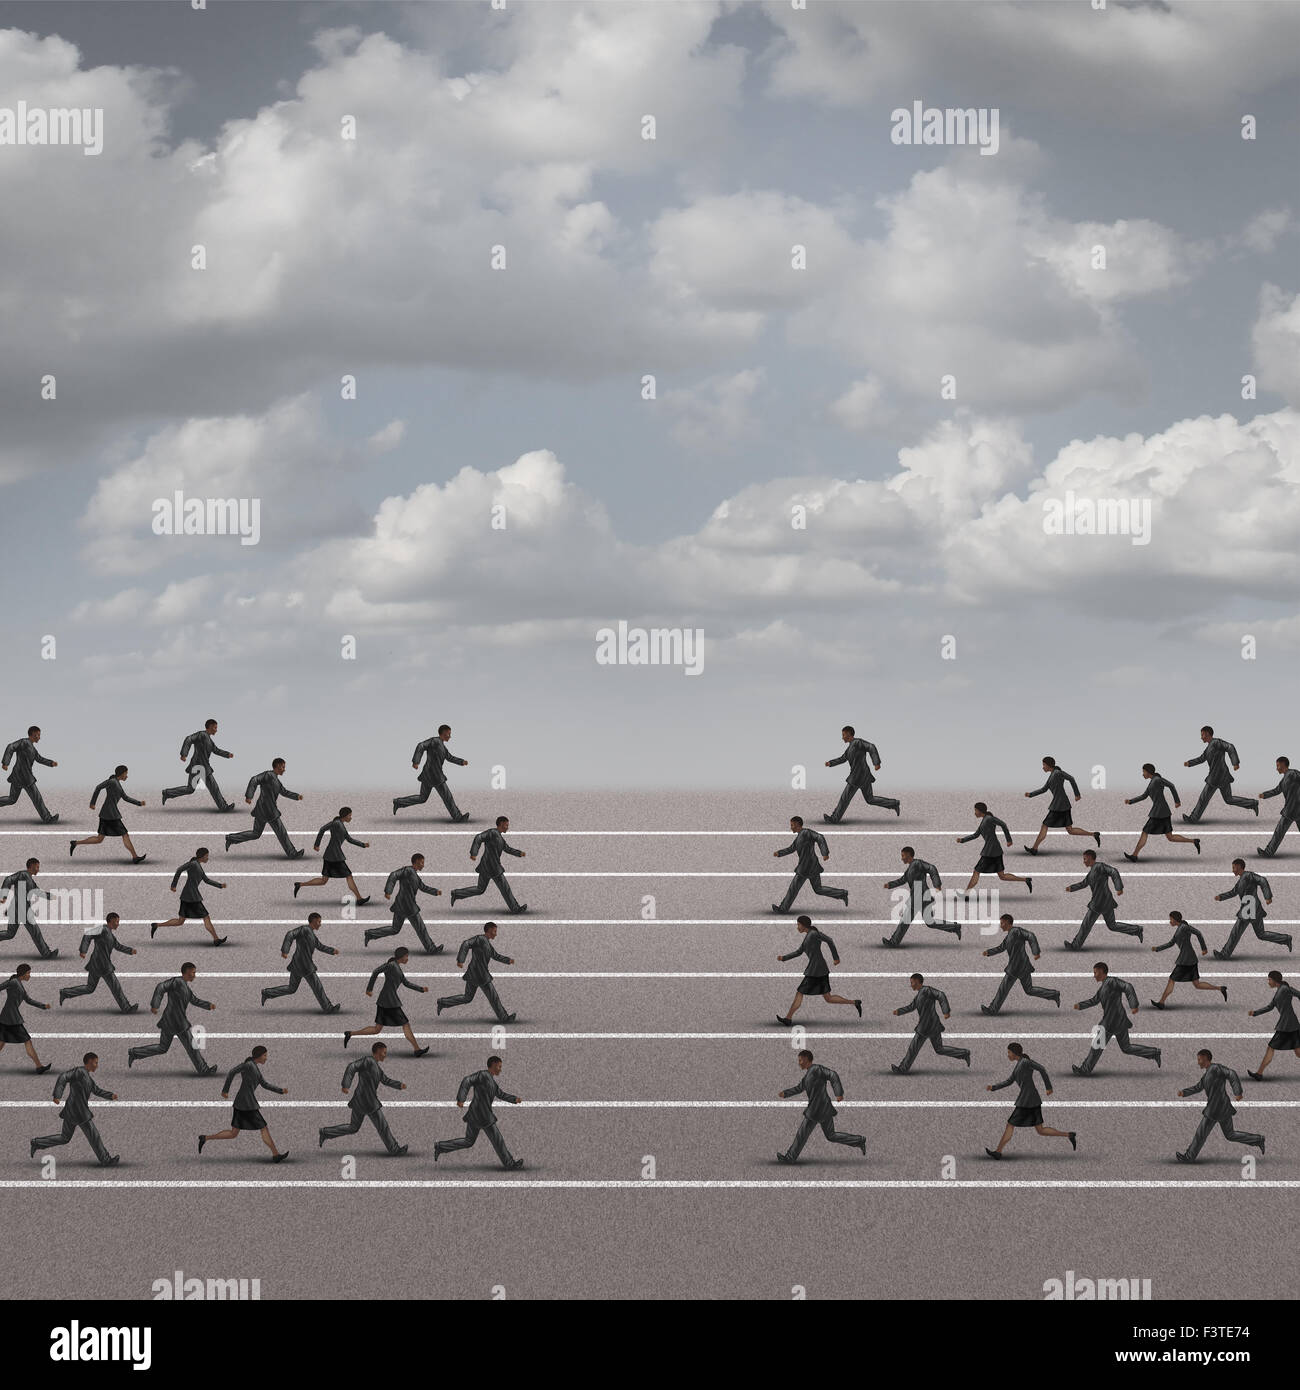 Joining forces business concept or company group confrontation as businesswomen and businessmen running towards - Stock Image